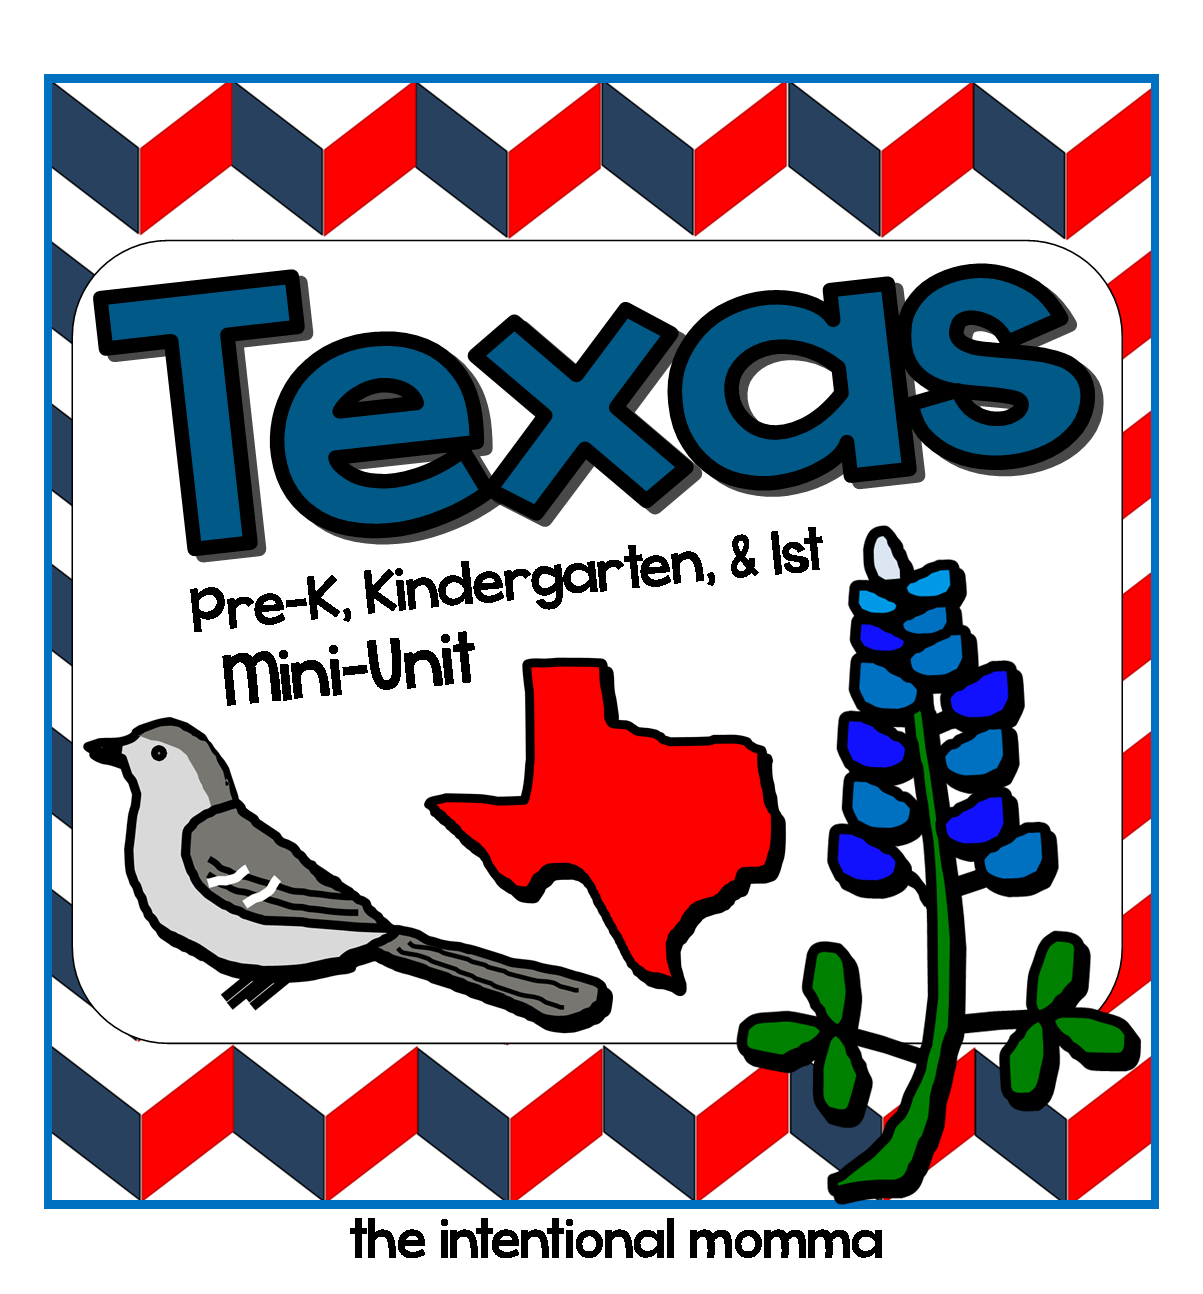 Texas history month printable worksheets and mini unit perfect for great for texas history units during the month of march this 25 page unit supplement features worksheets for making your own texas symbol booklet buycottarizona Images